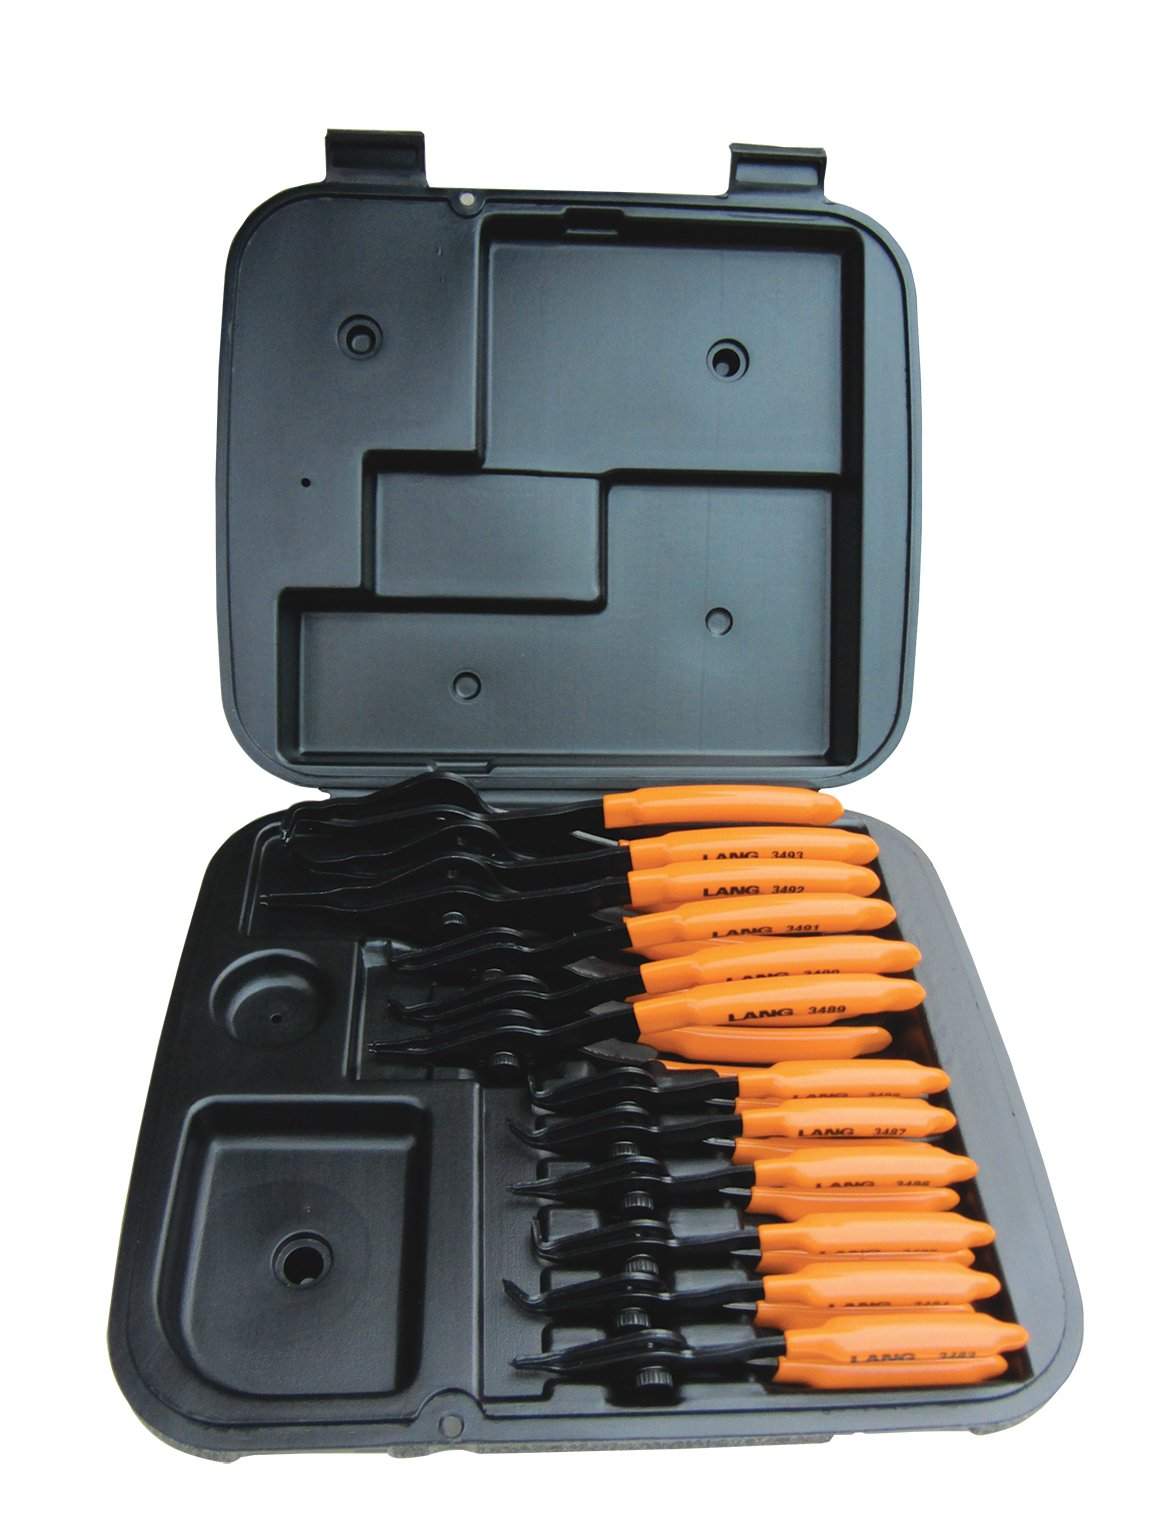 Lang Tools (3495) 12-Piece Fixed Tip Combination Internal/External Snap Ring Pliers Set by Lang Tools